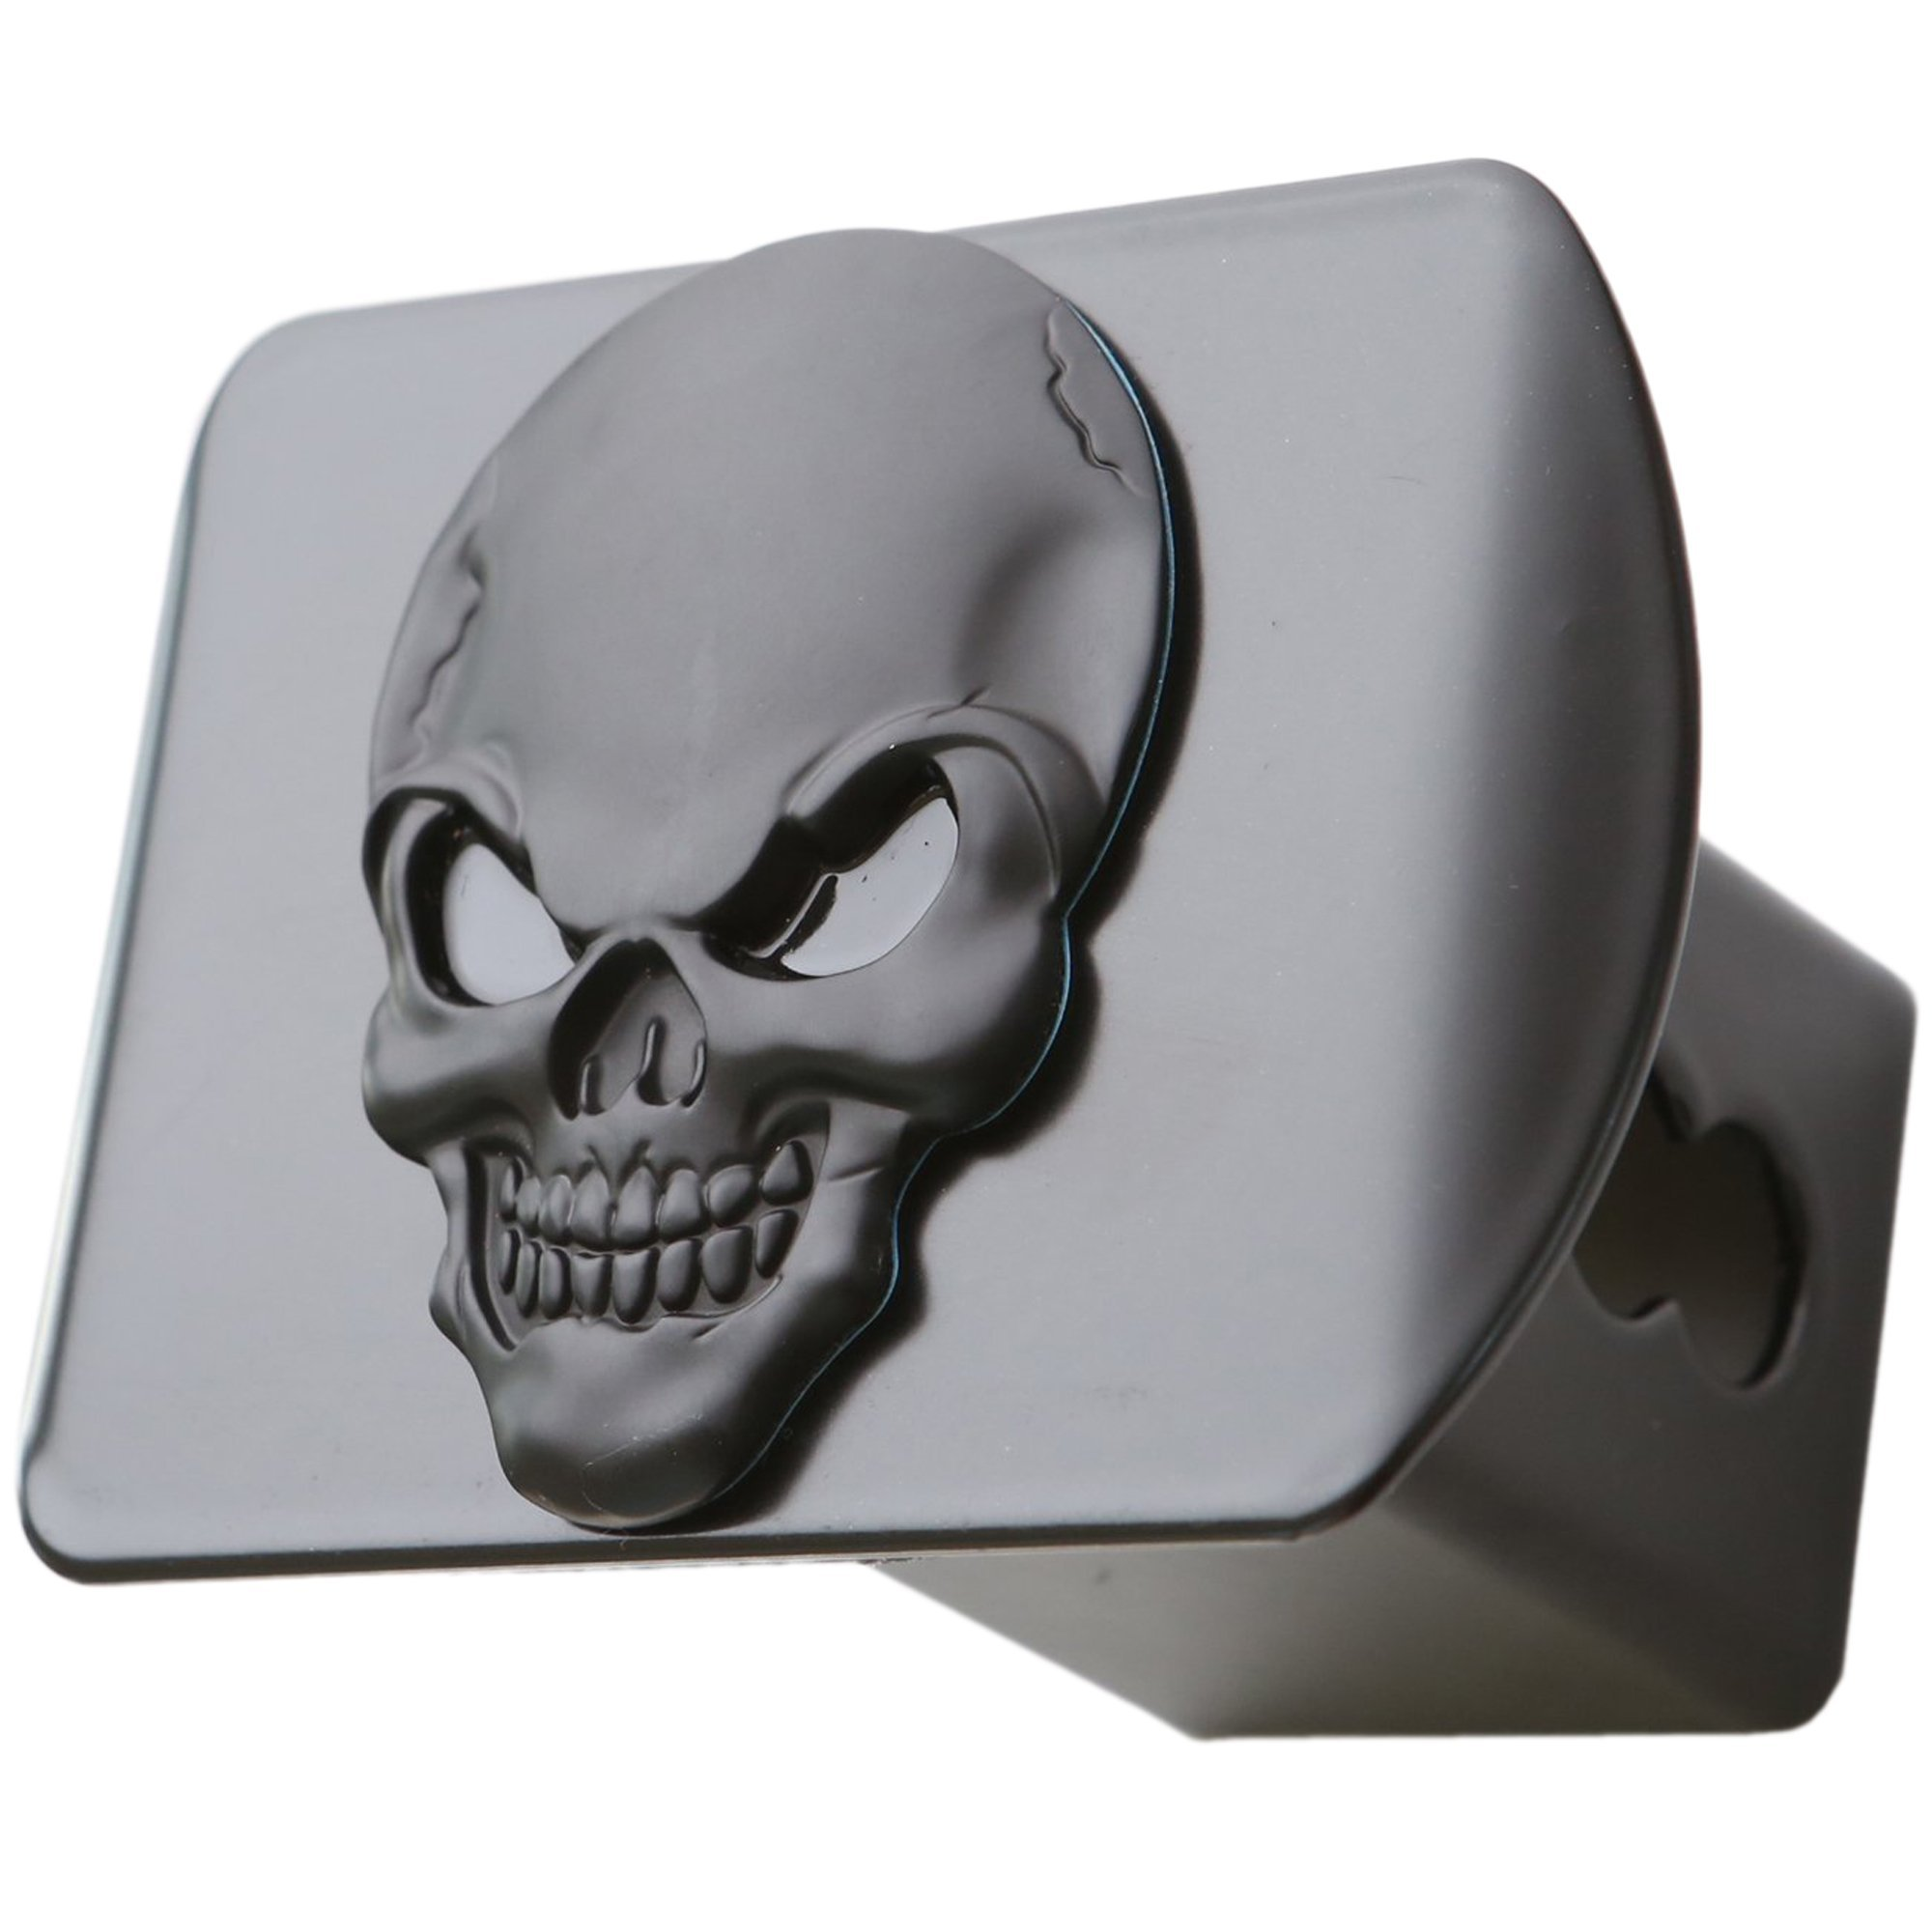 LFPartS 100% Metal Skull 3D Emblem Trailer Hitch Cover Fits 2'' Receivers (Black on Black) by LFPartS